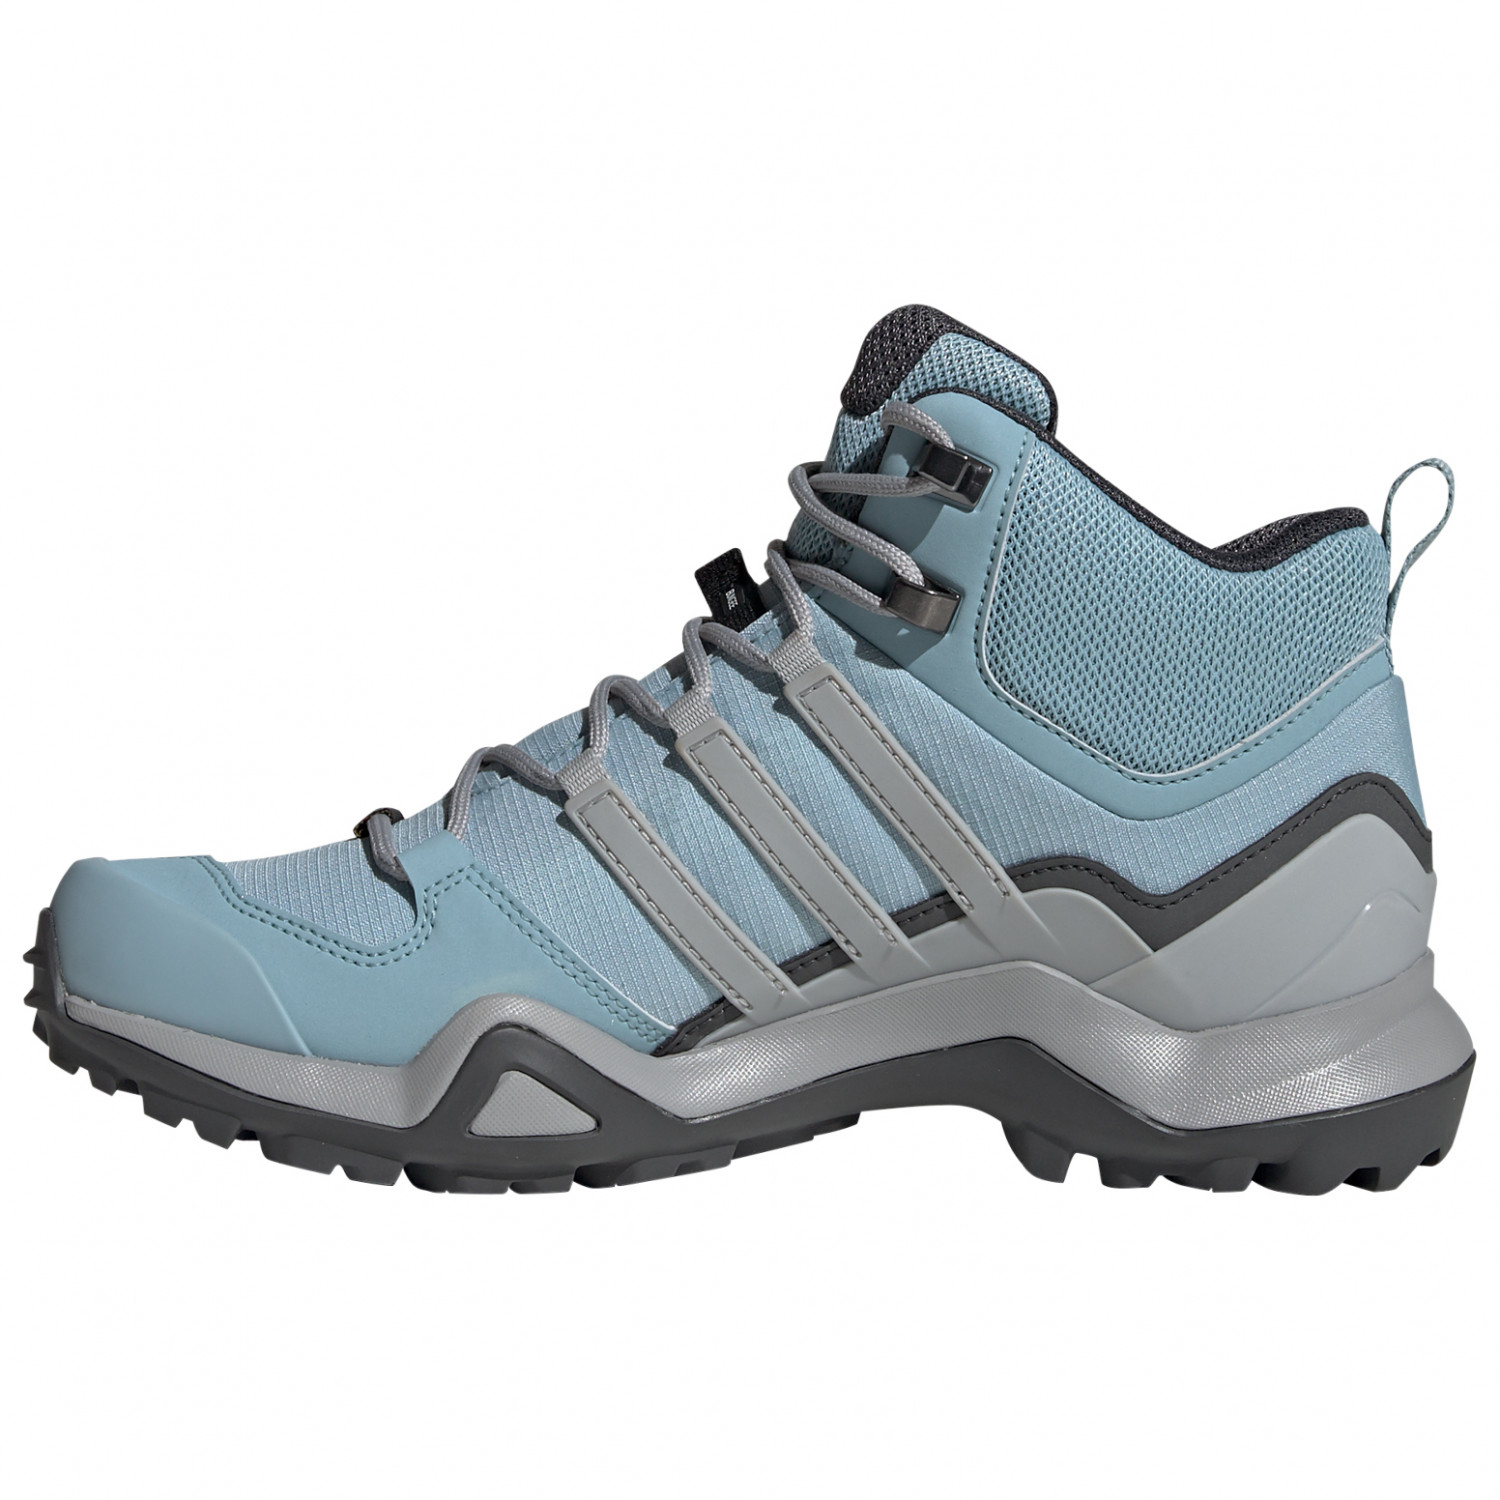 f6a4e6d3053d2 ... adidas - Women s Terrex Swift R2 Mid GTX - Walking boots ...